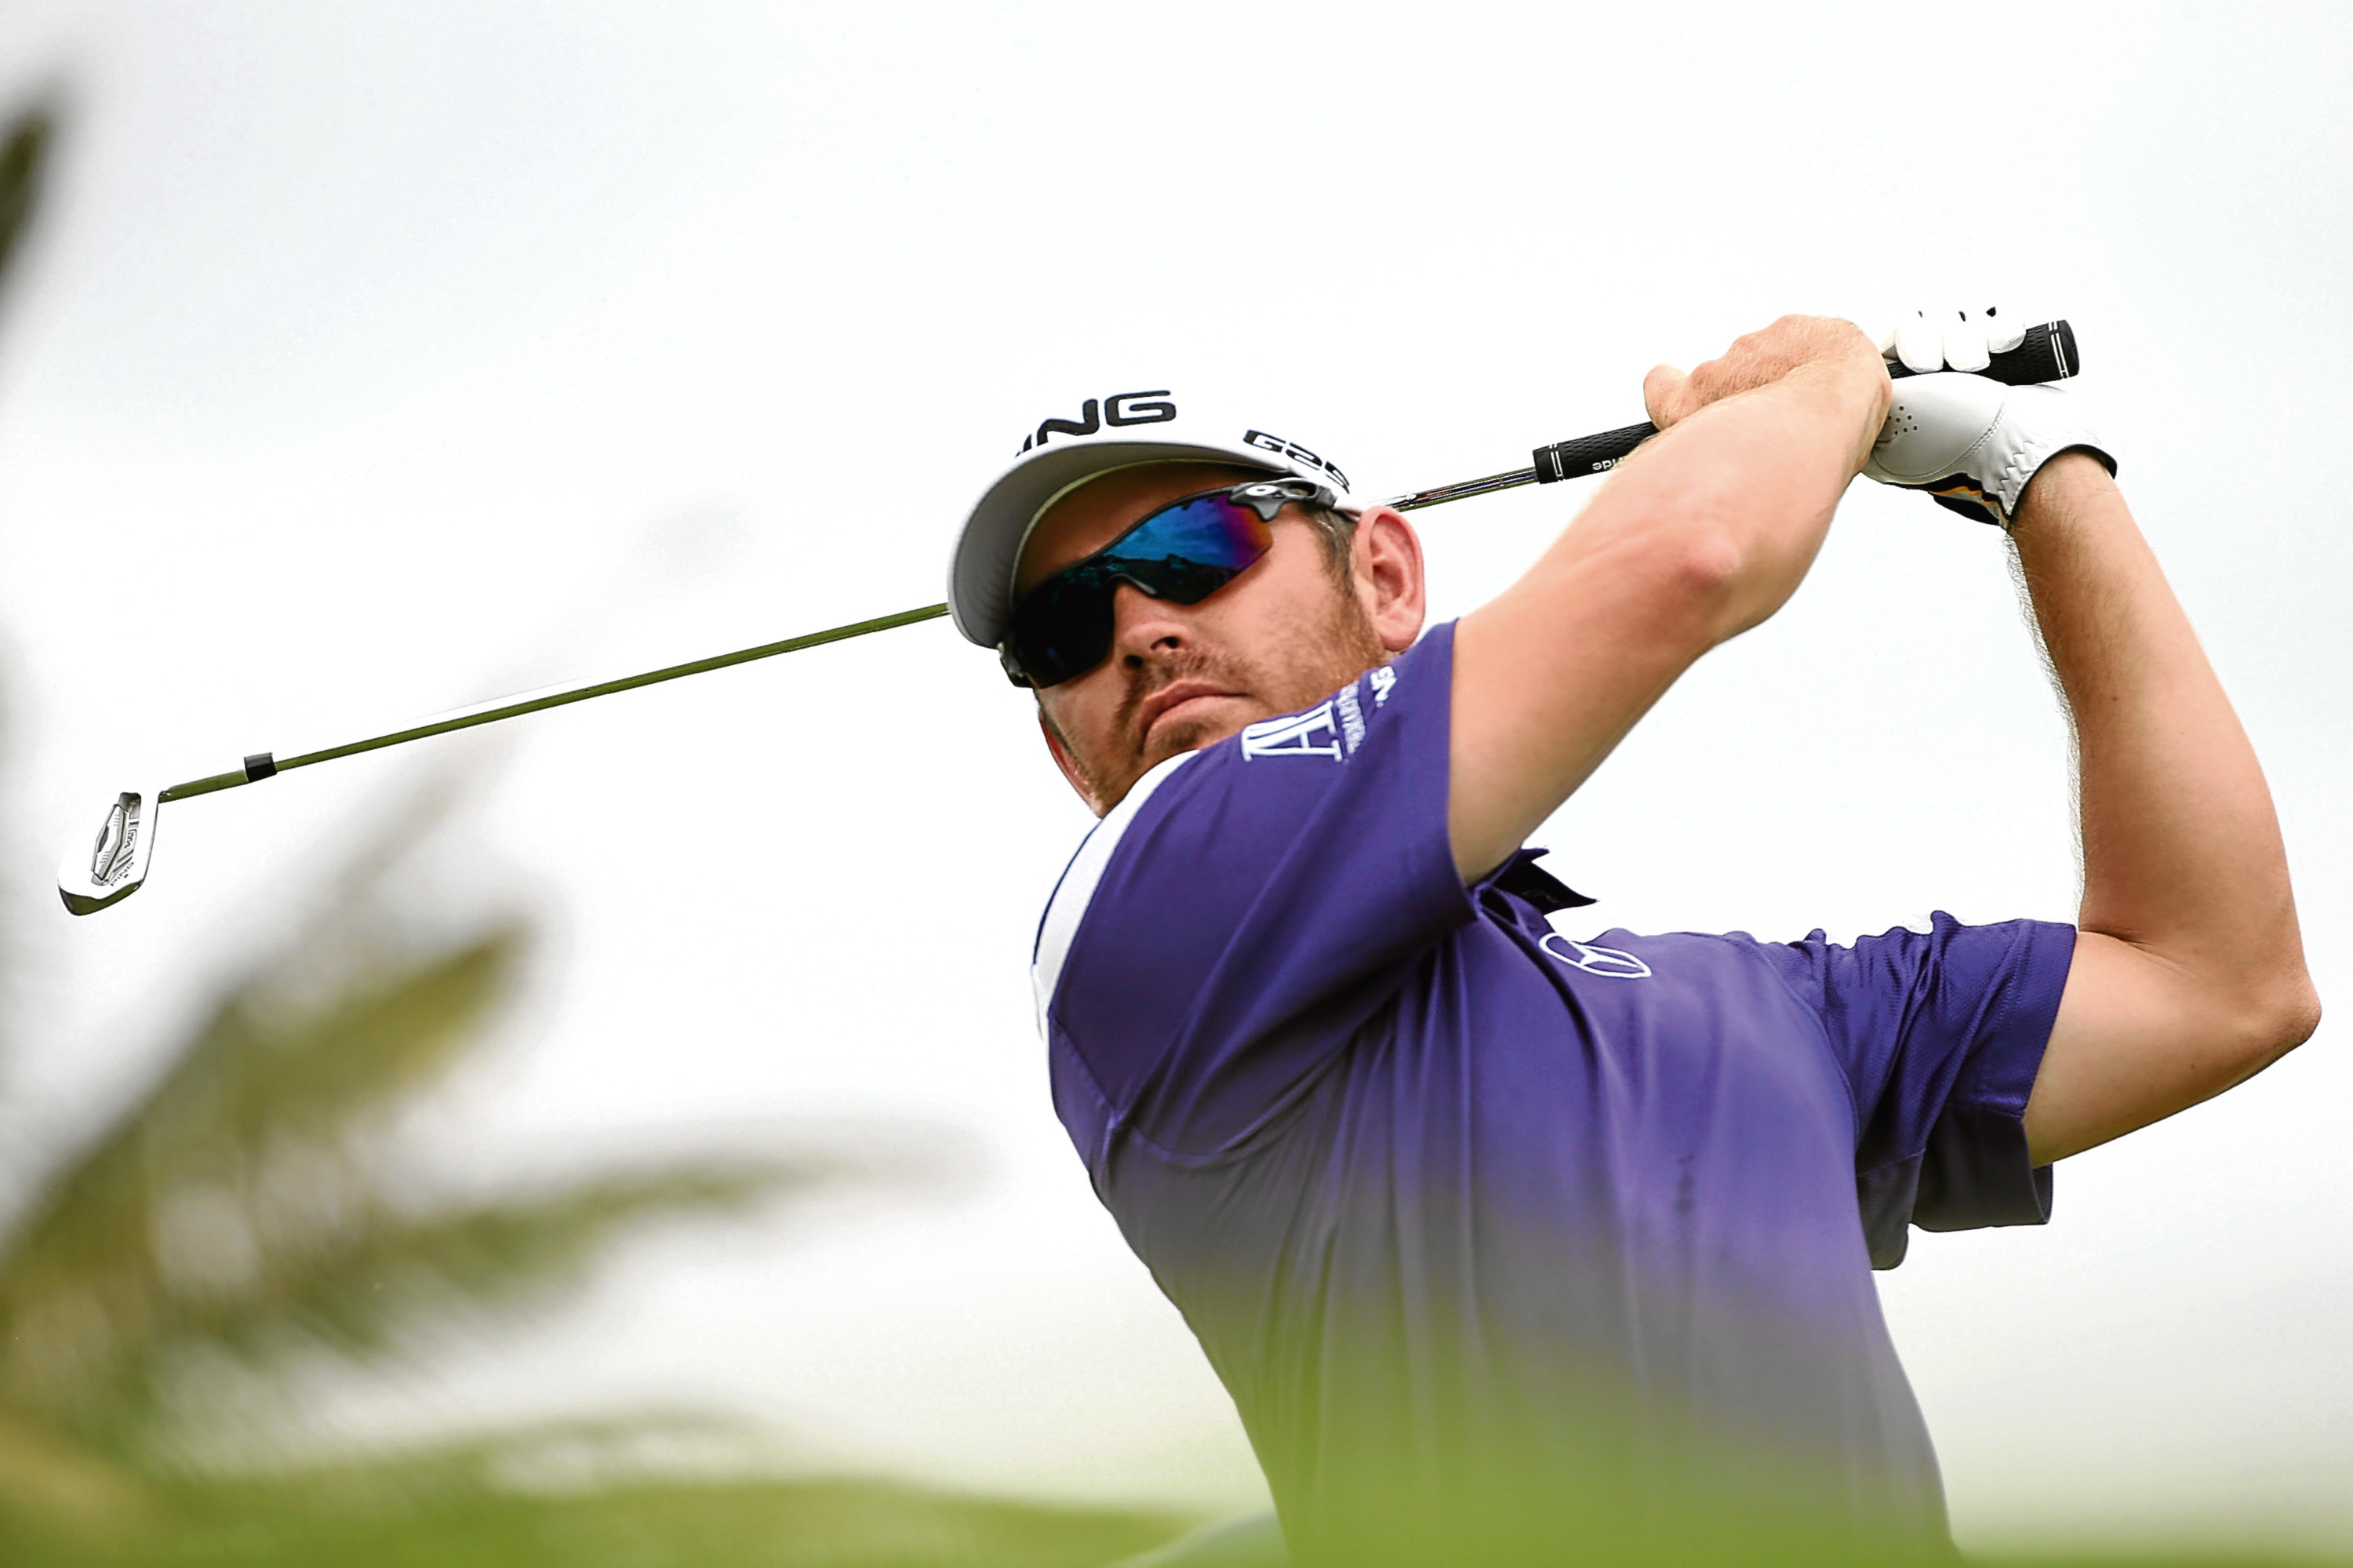 Louis Oosthuizen won the Perth International in February, but it'll be a different beast if he defends next year.